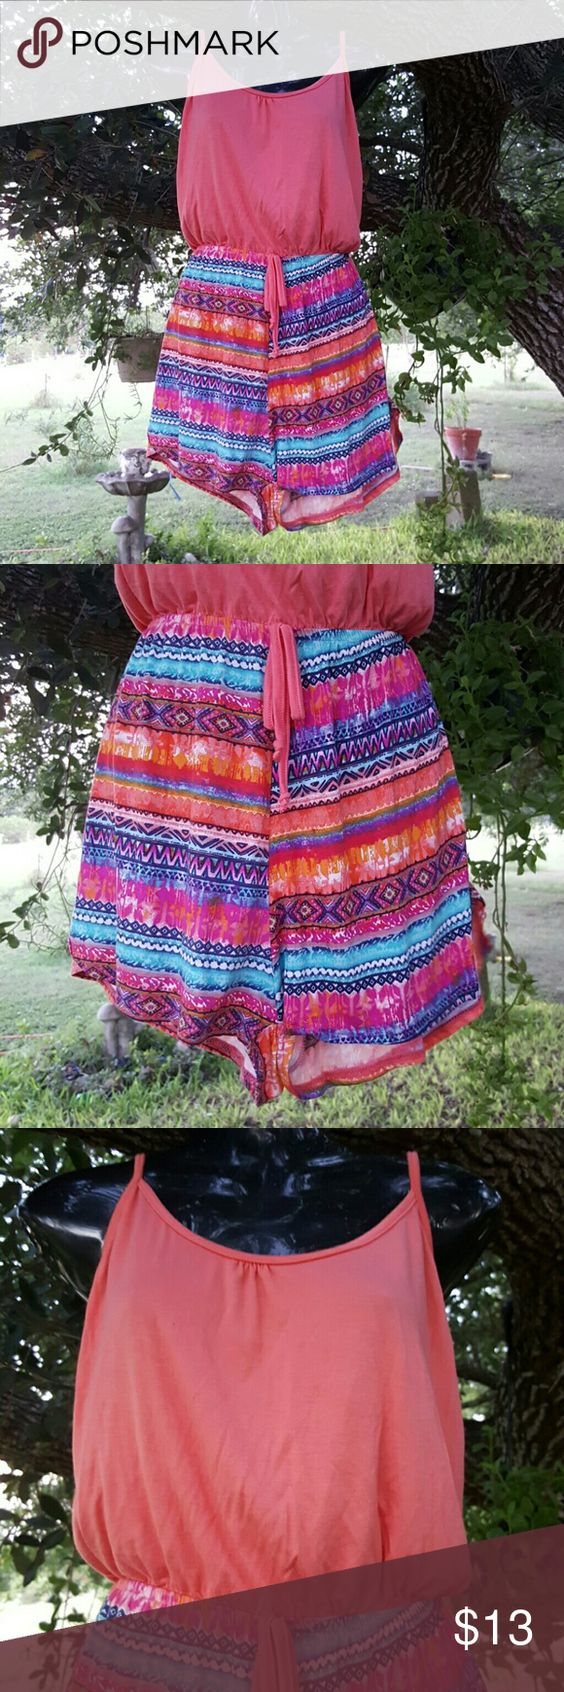 "Cute Colorful Romper Shorts This a very colorful romper in pink the top part and multicolor de part of the shorts. Size XL From the part of the top of the breast to the bottom of the shorts is 24"". Rue 21 Other"